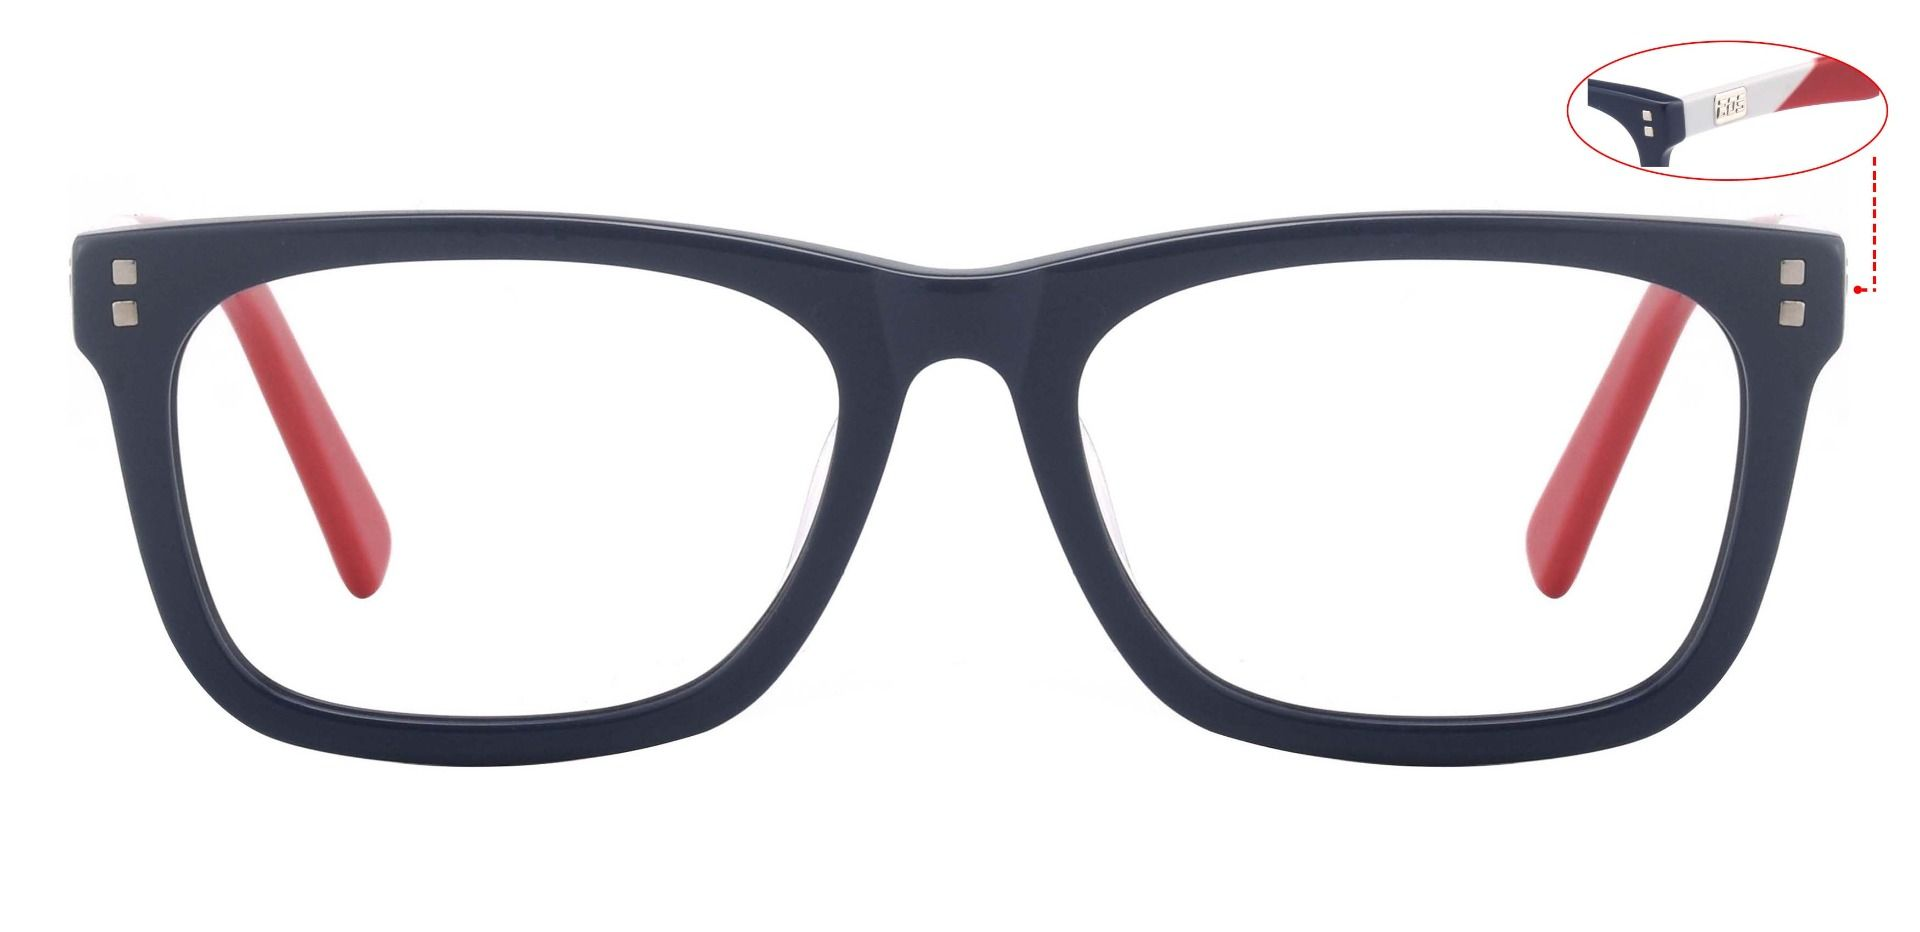 Harbor Rectangle Lined Bifocal Glasses - The Frame Is Blue And Red